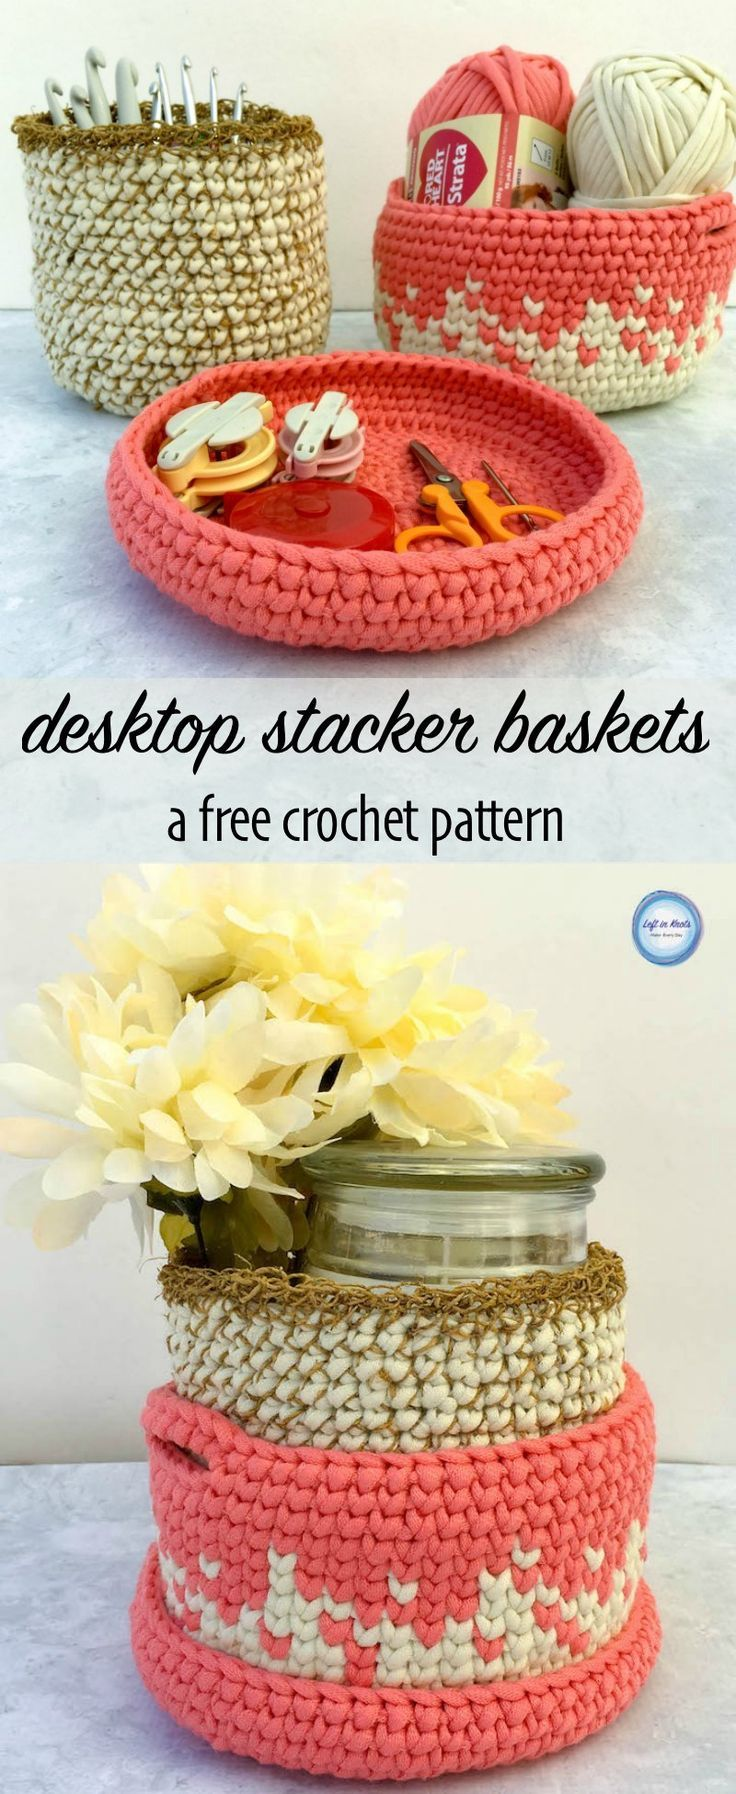 A modern free crochet pattern!  Use Red Heart Strata Yarn or Bernat Maker Home Dec to make a set of these modern nesting baskets.  This pattern is a perfect, fast organizing project.  Or fill it with a candle or baby essentials to turn this into a fabulou